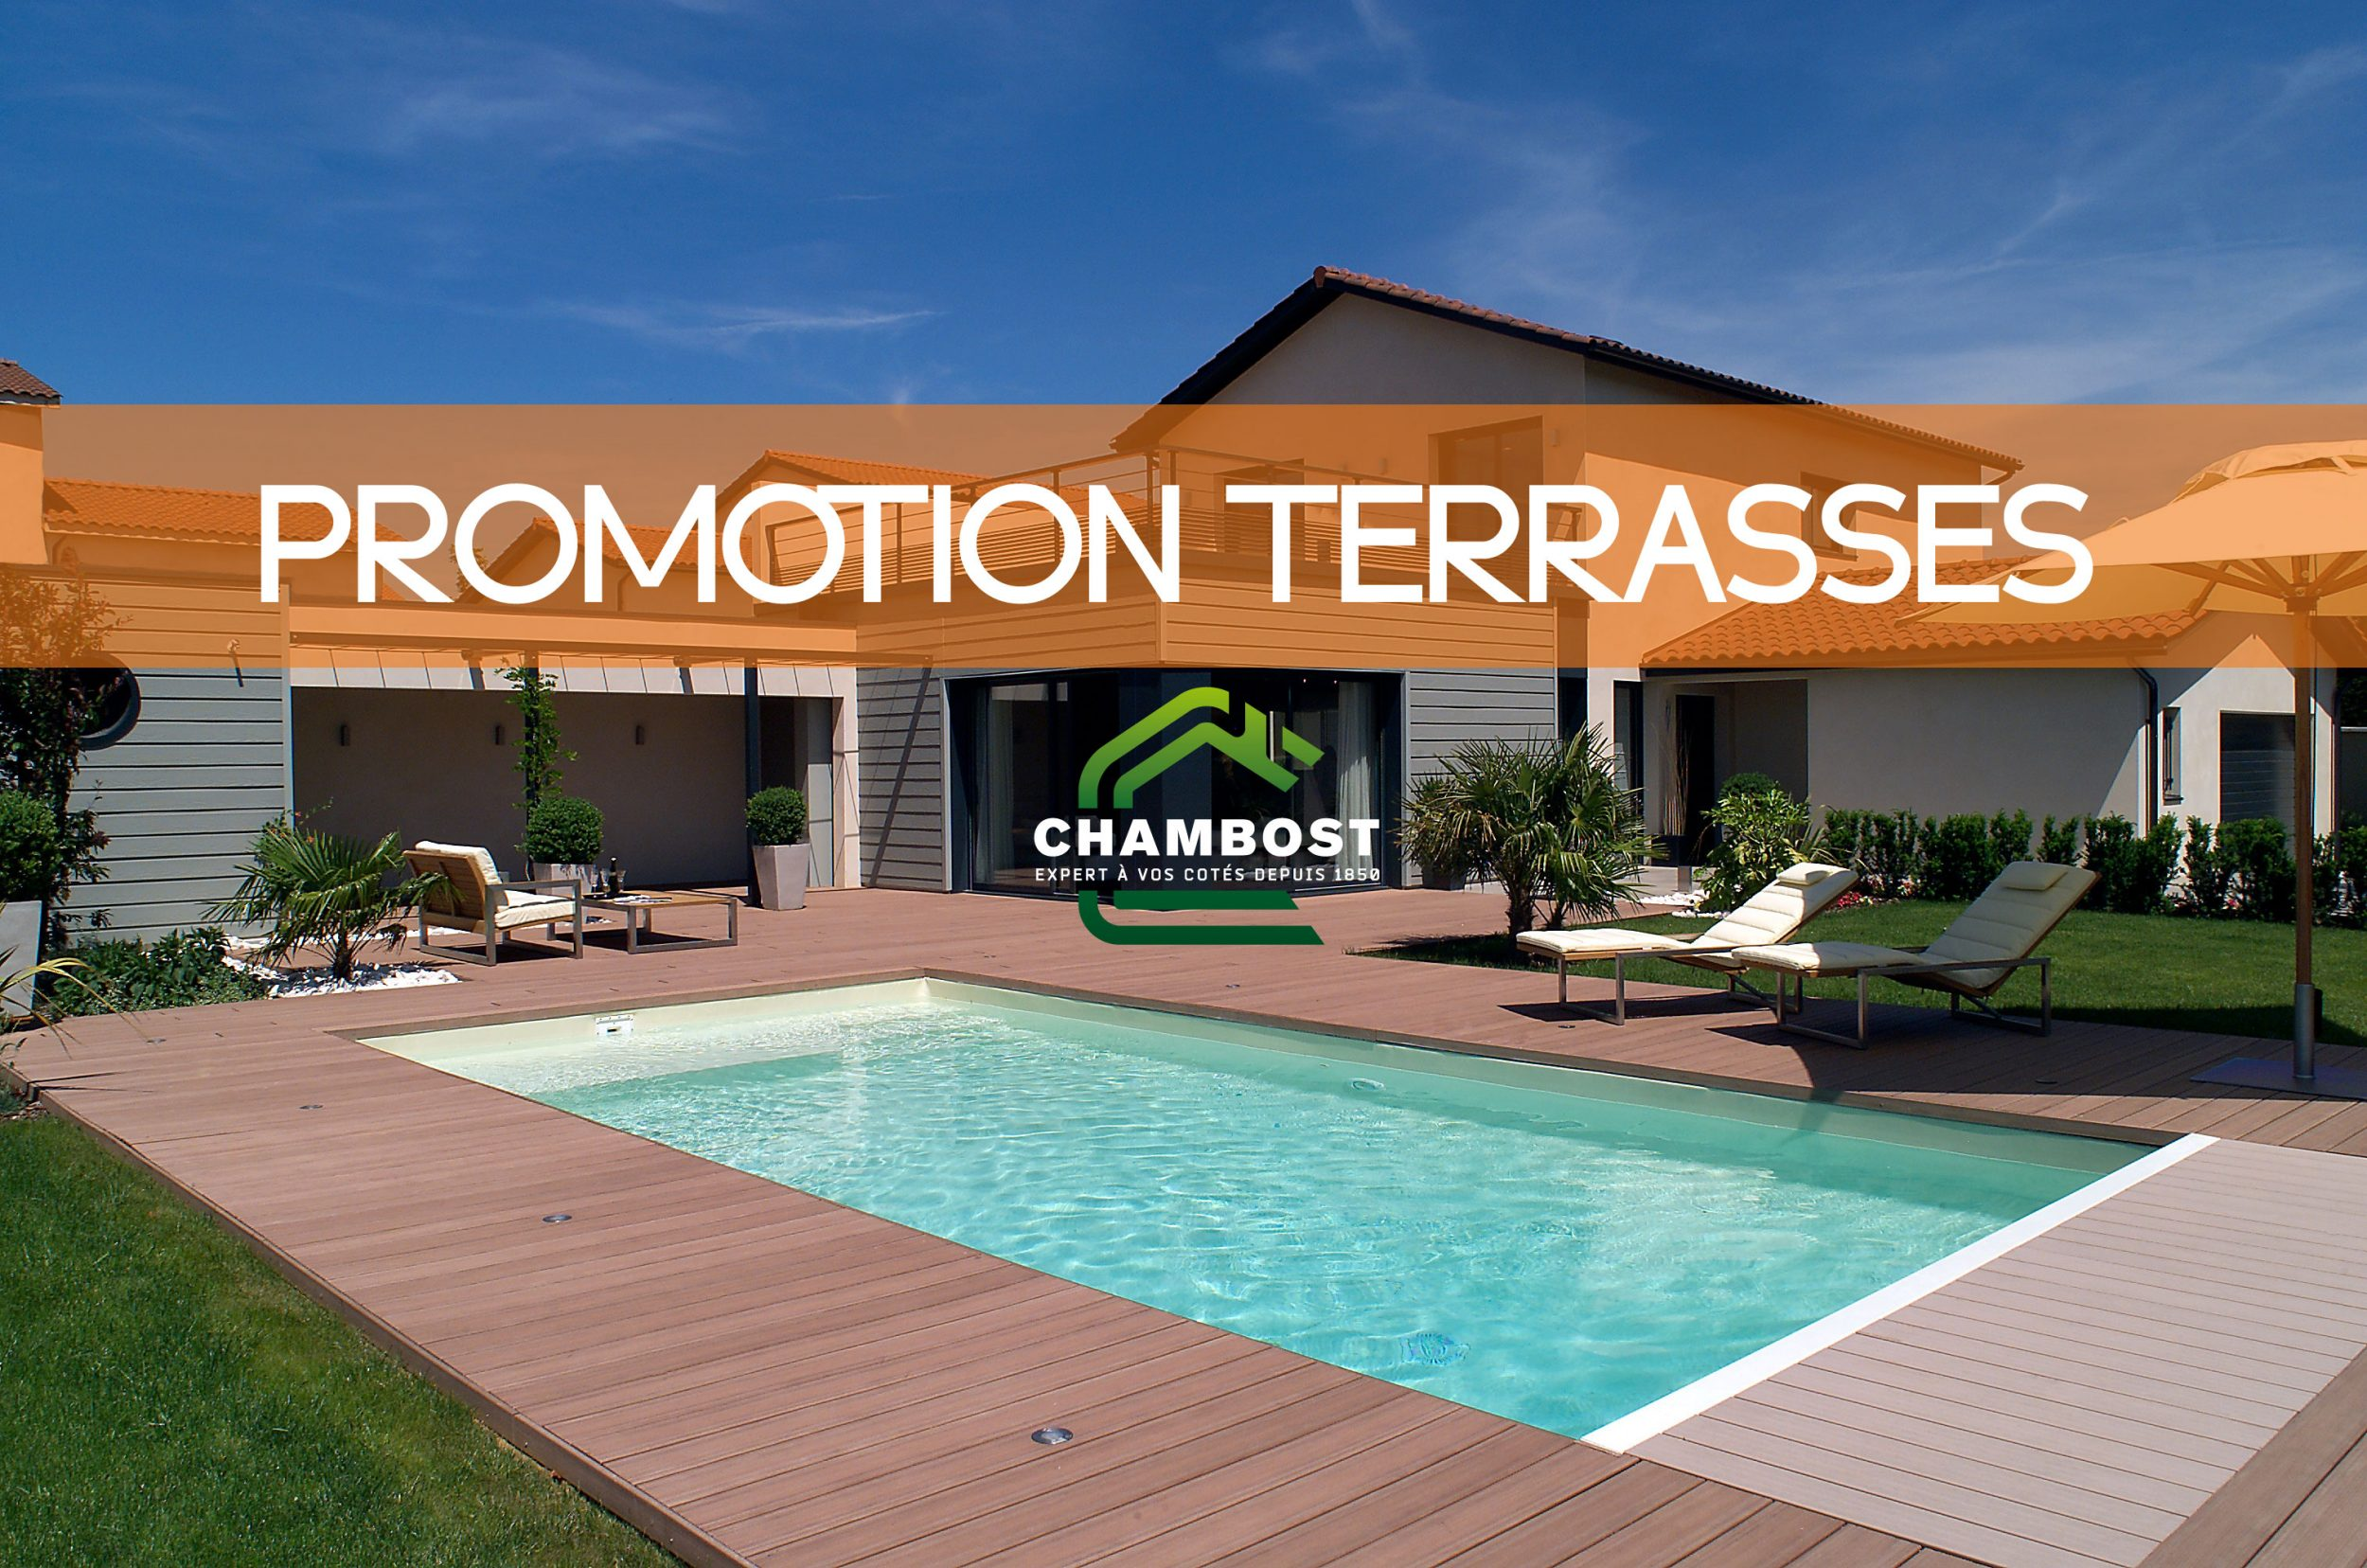 Promotion Terrasses